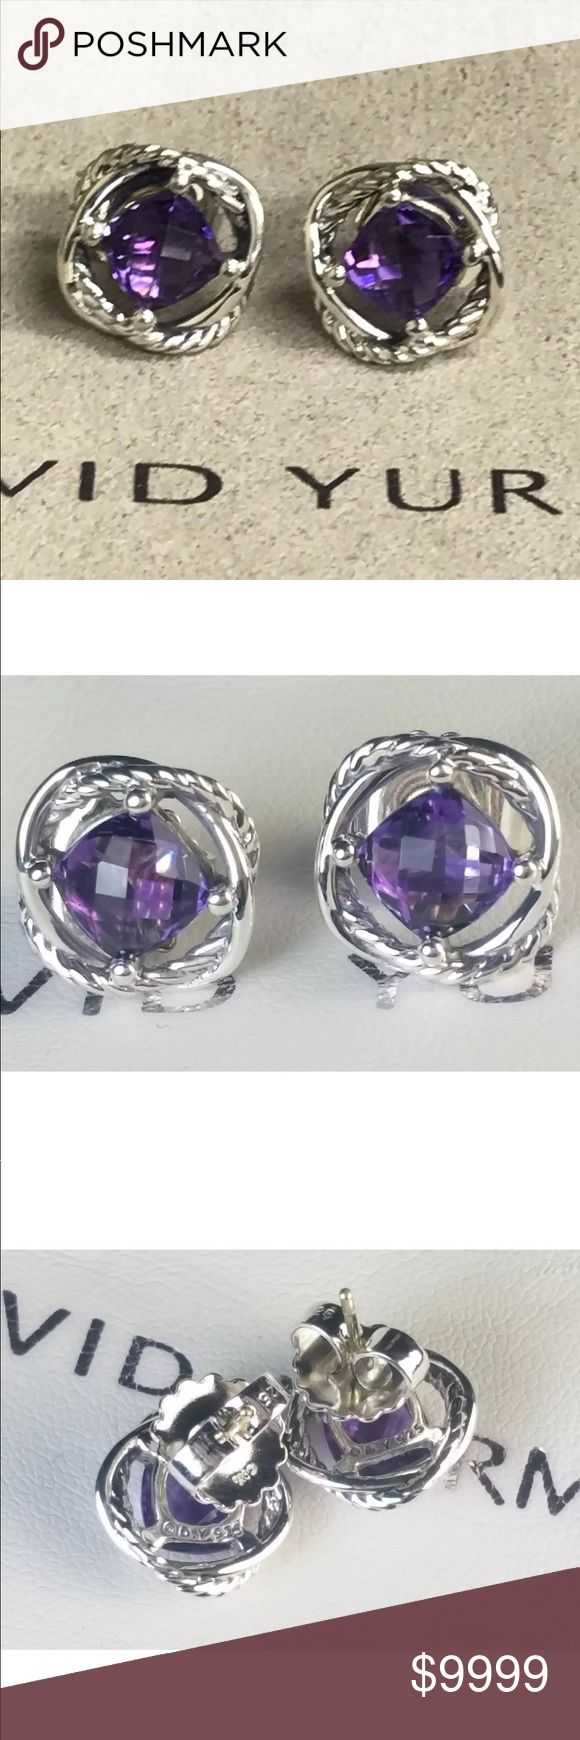 David Yurman Amethyst & Silver Infinity Earrings David Yurman Amethyst & Silver Infinity Earrings • In excellent condition. Professionally polished & cleaned to look as good as new. 7x7 mm size. Authenticity guaranteed. Please check out my other David Yurman jewelry. I have a matching DY Amethyst Infinity Ring. Bundle & Save! David Yurman Jewelry Earrings